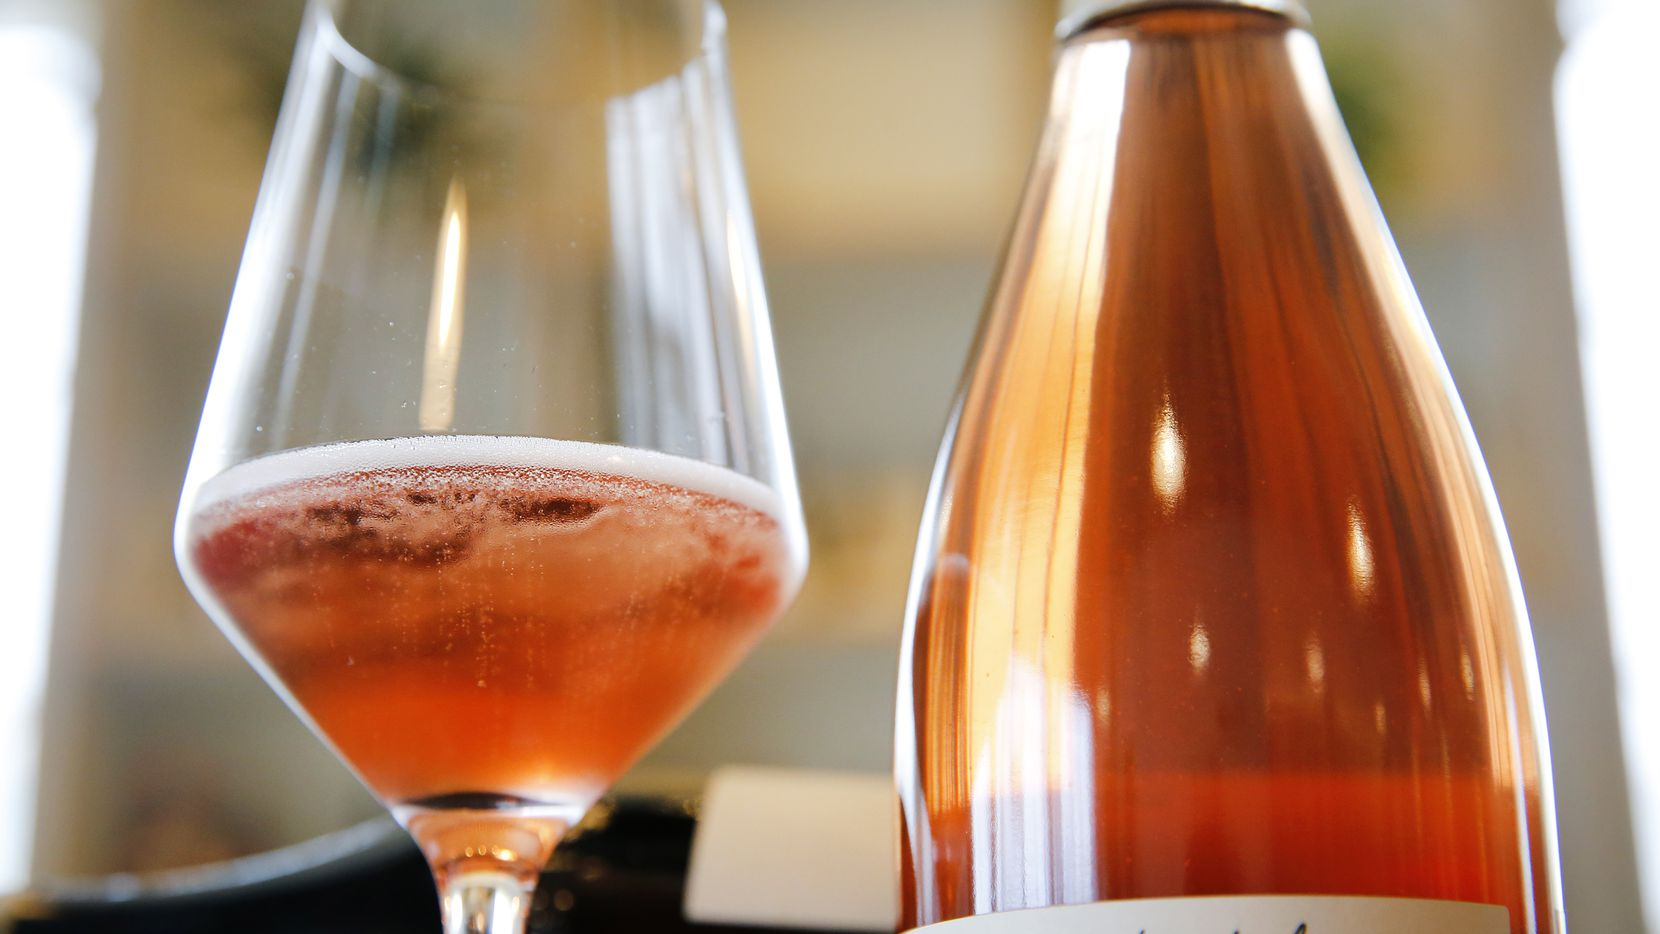 A glass of Les Capriades piege a filles rose rose is pictured at Bar and Garden on Ross Ave in Dallas, Tuesday, February 28, 2017.